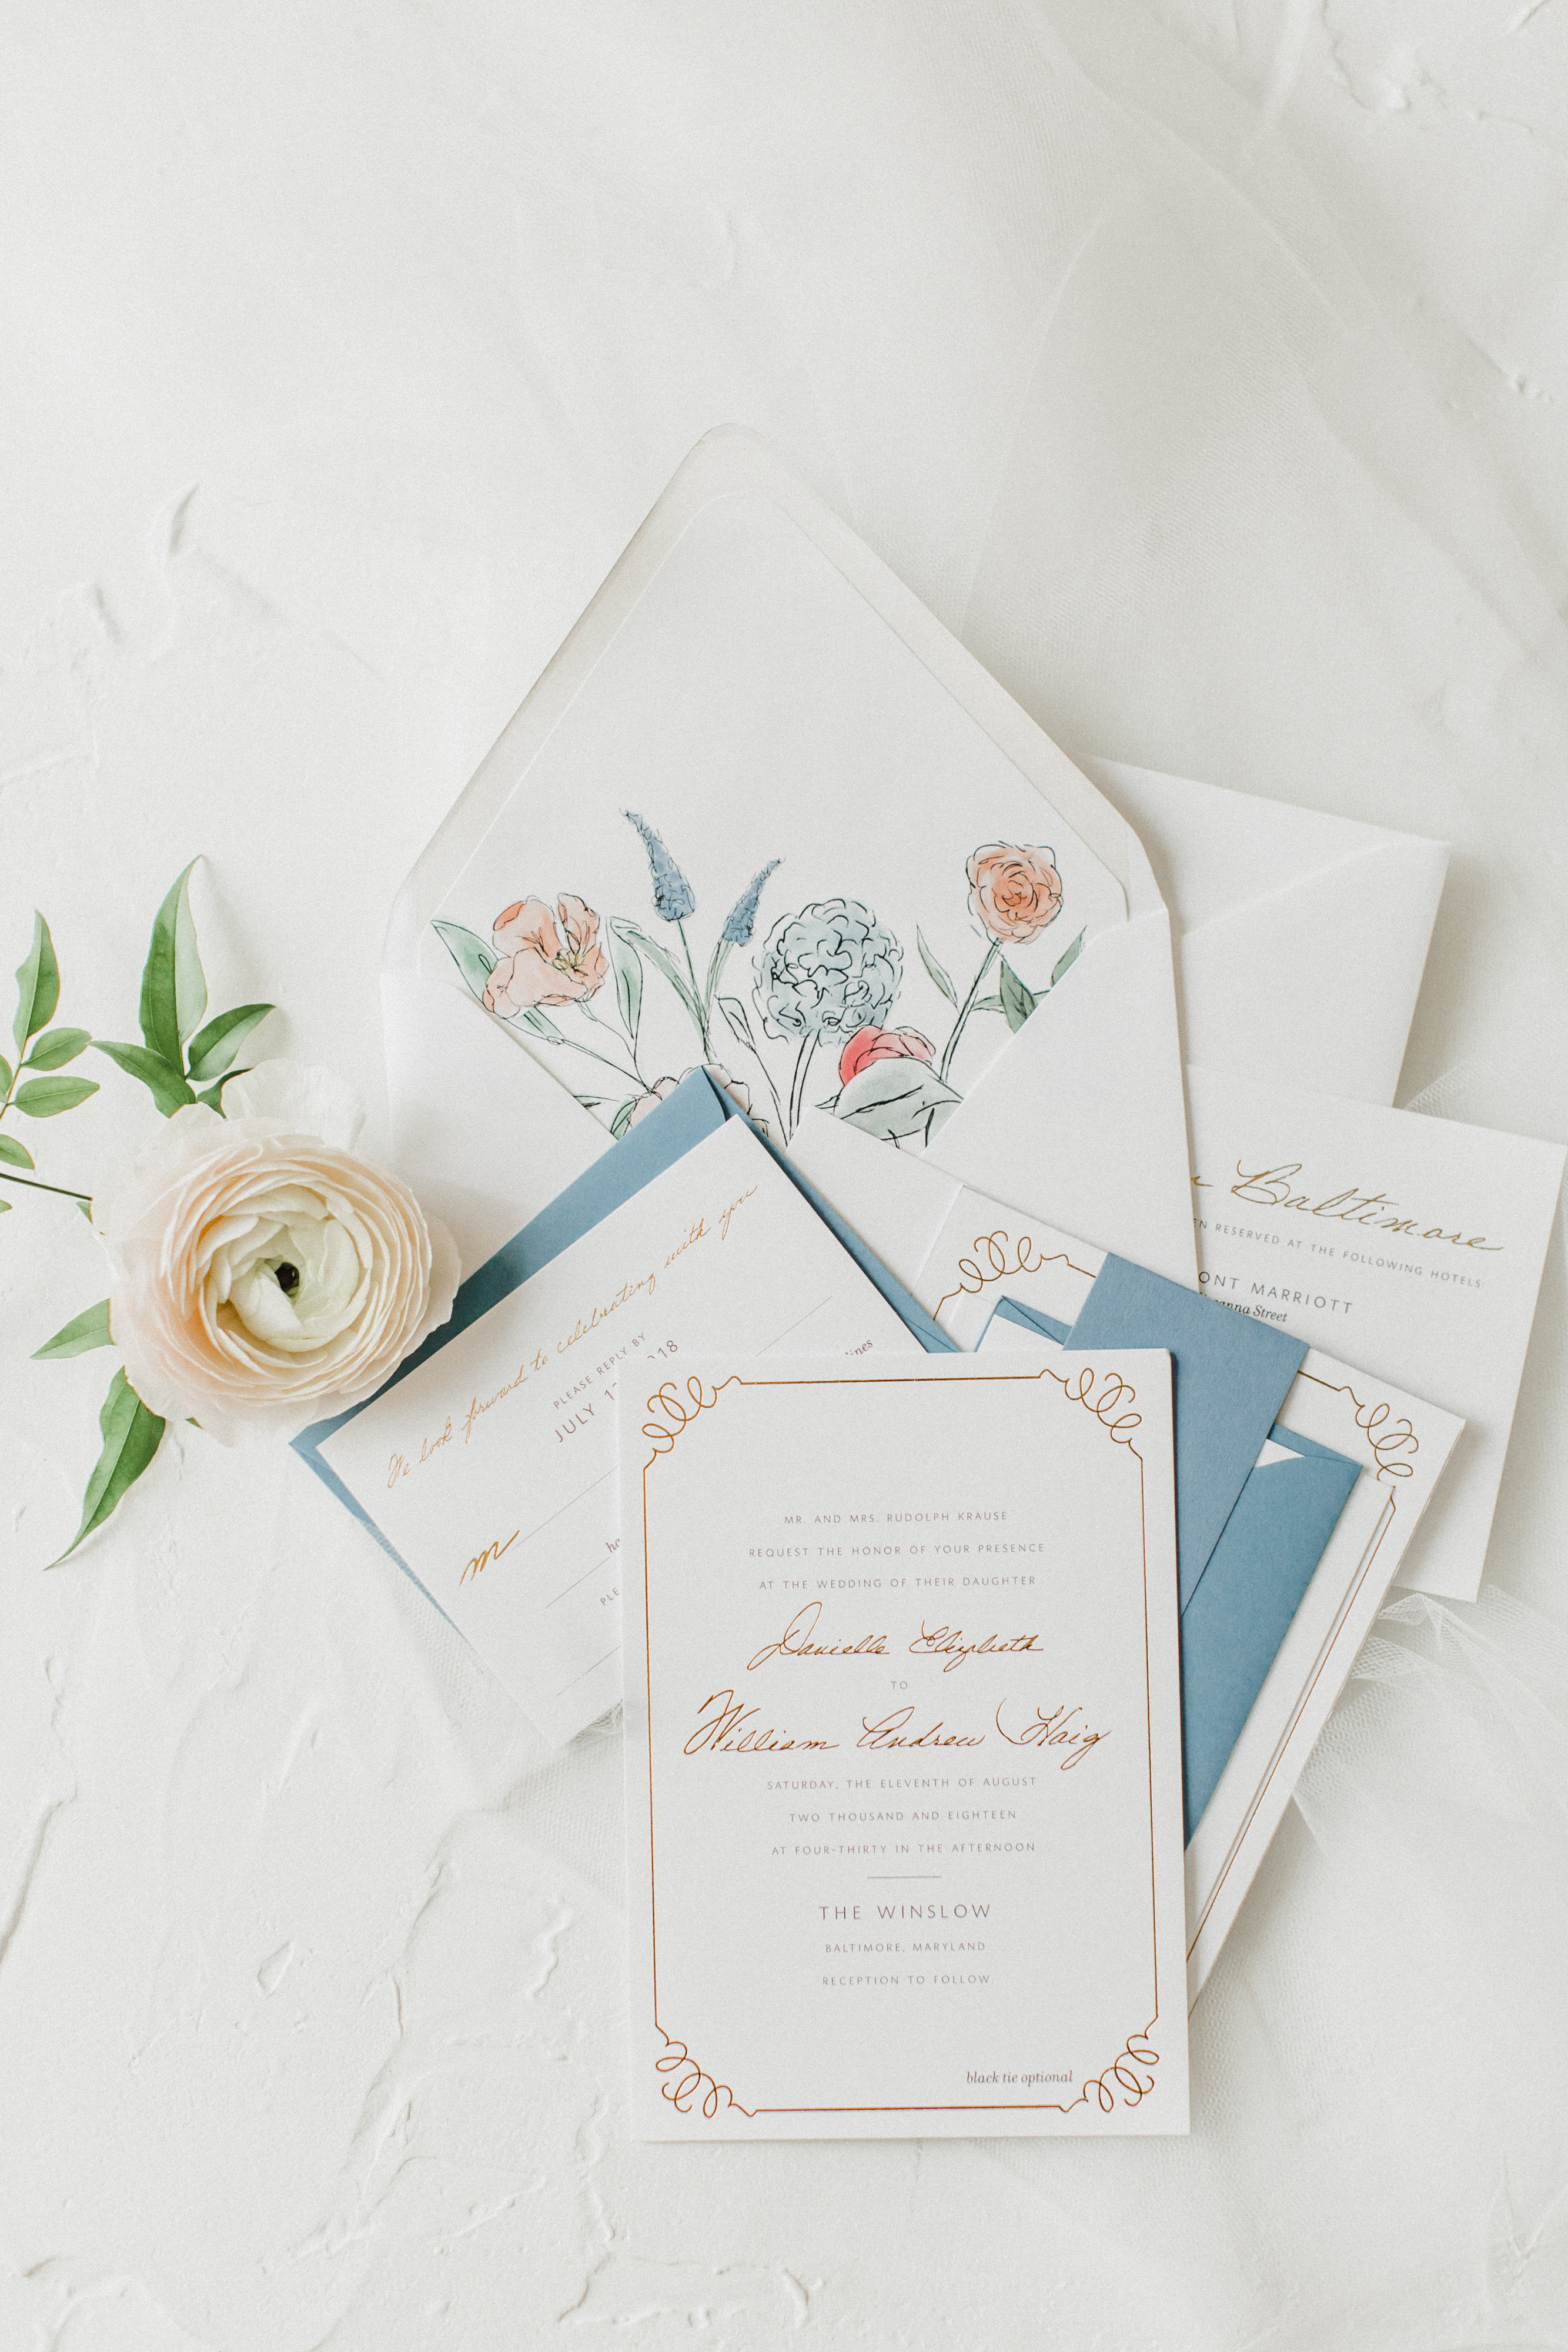 How Much Time Should You Really Allot for Stuffing Your Own Wedding Invitations?